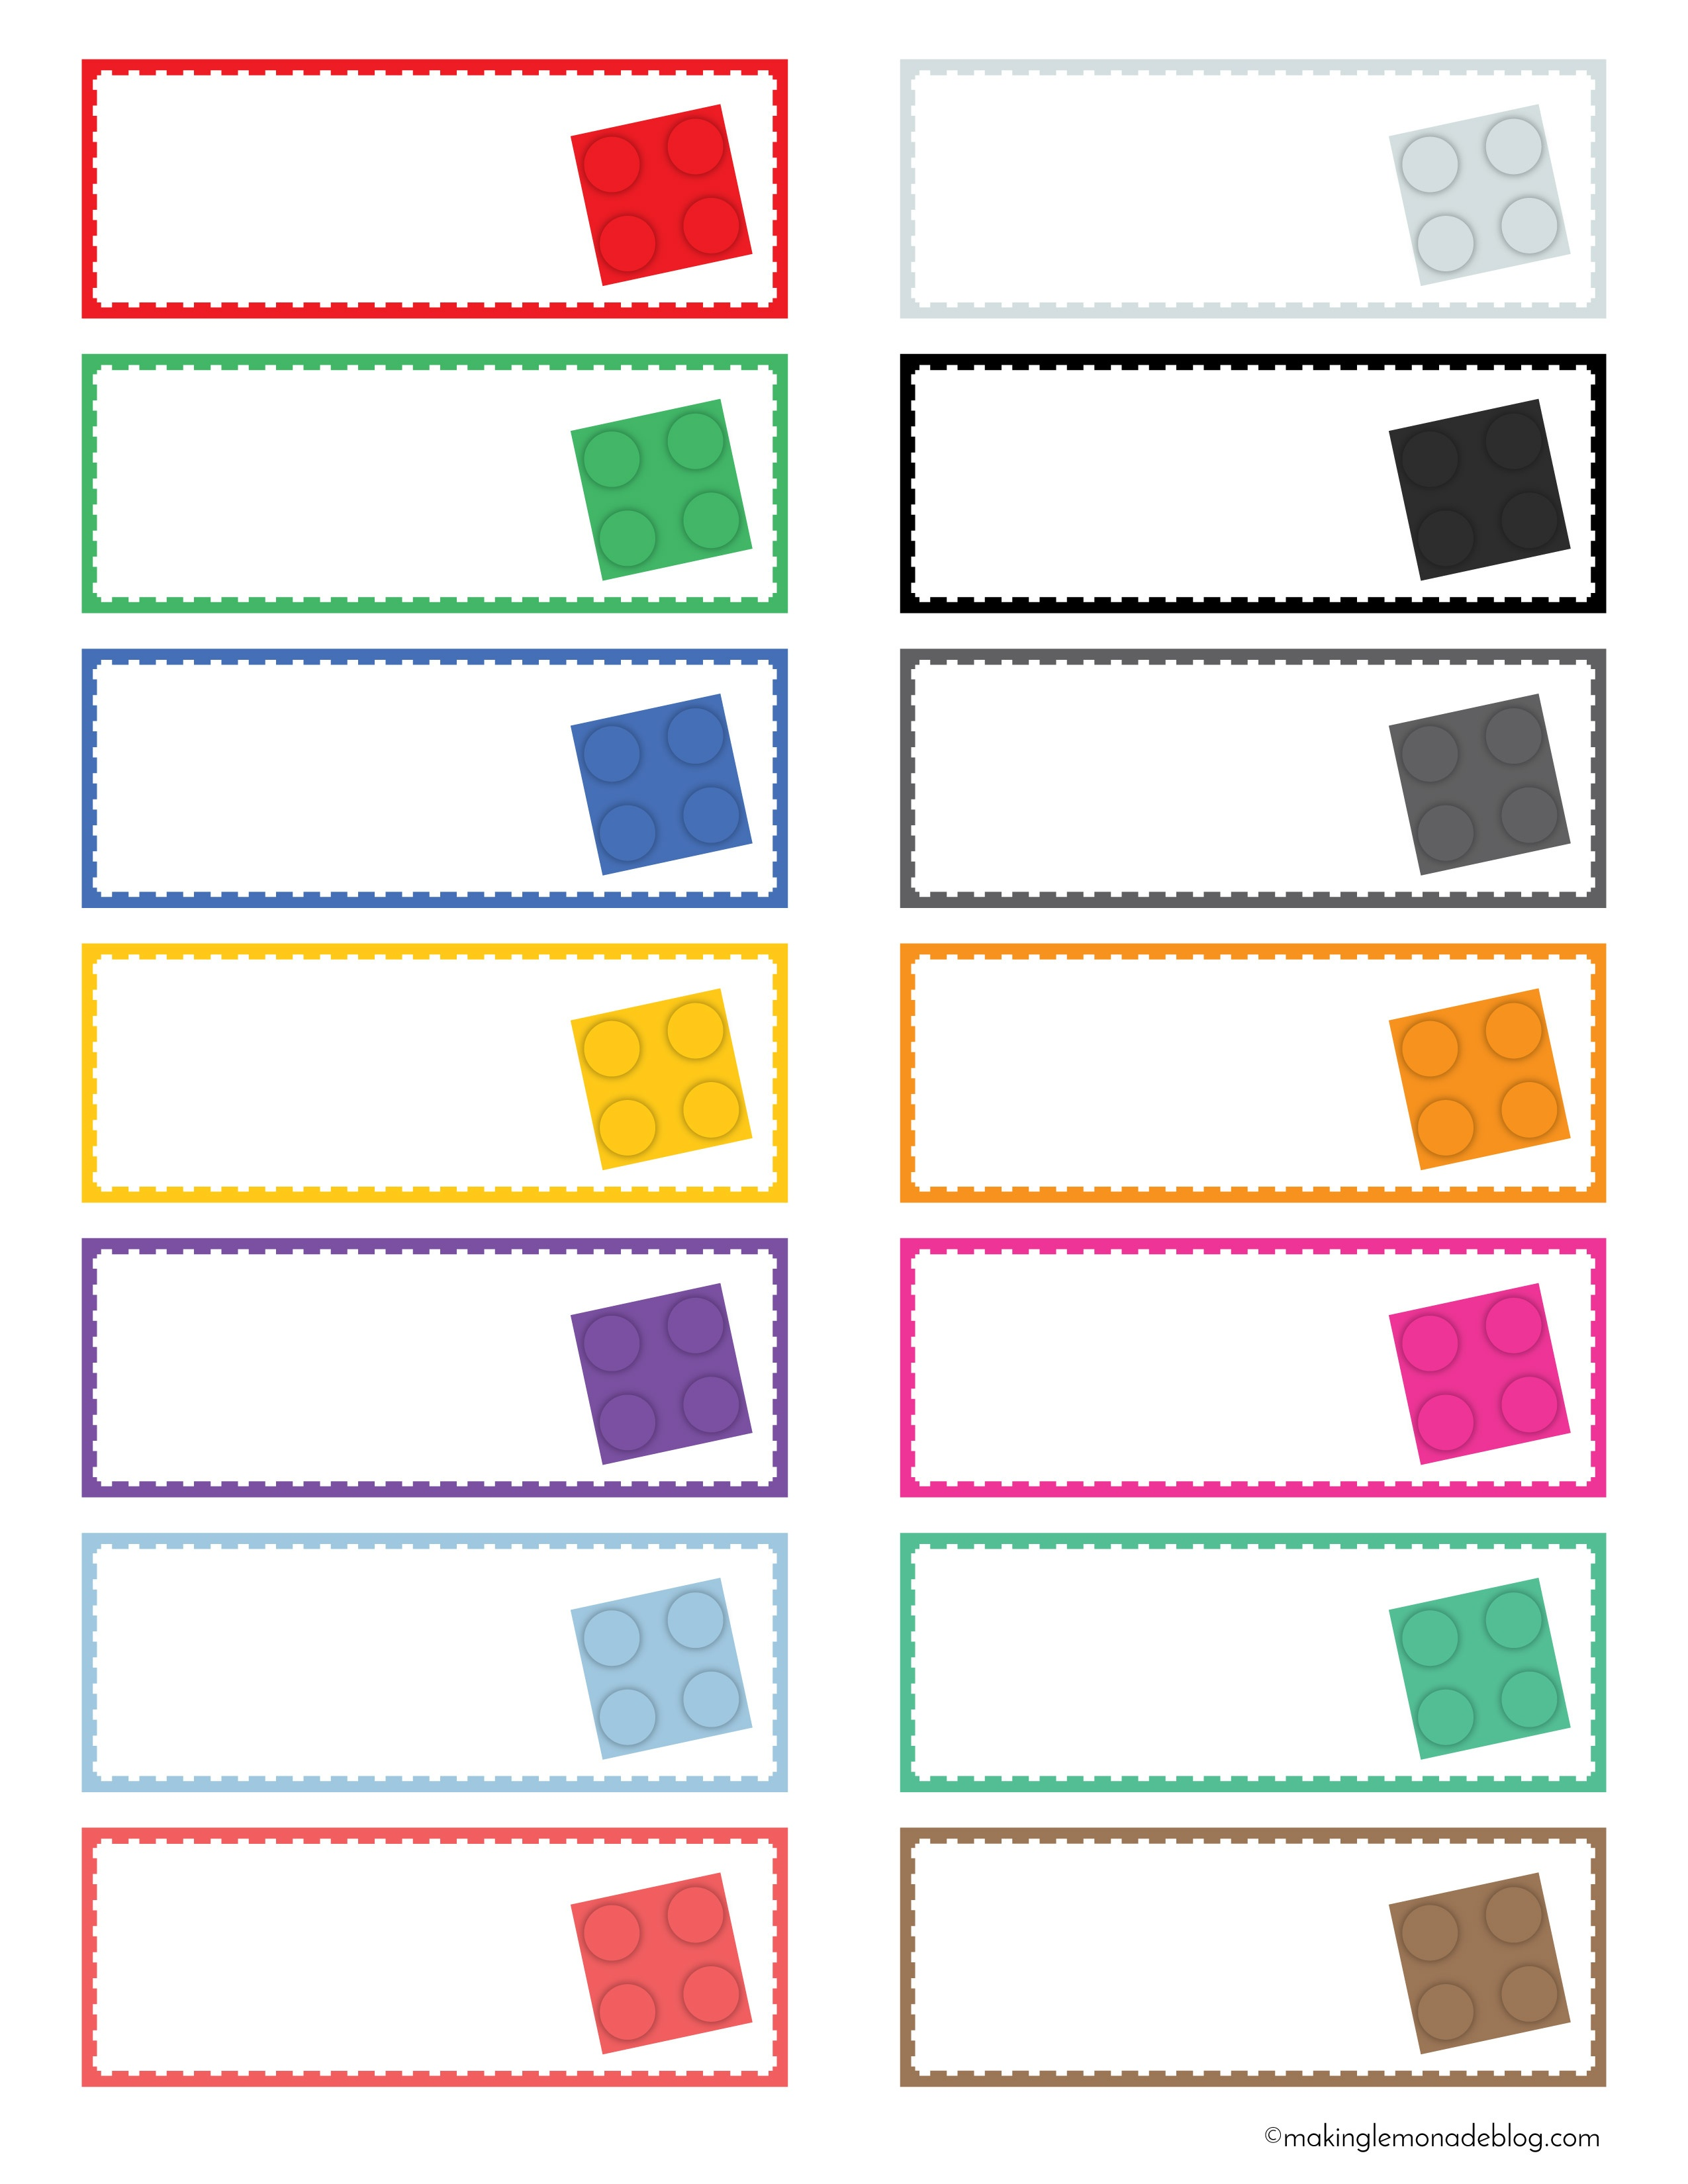 The Magical Lego Organizing Solution & Free Printable Labels - Free Printable Labels